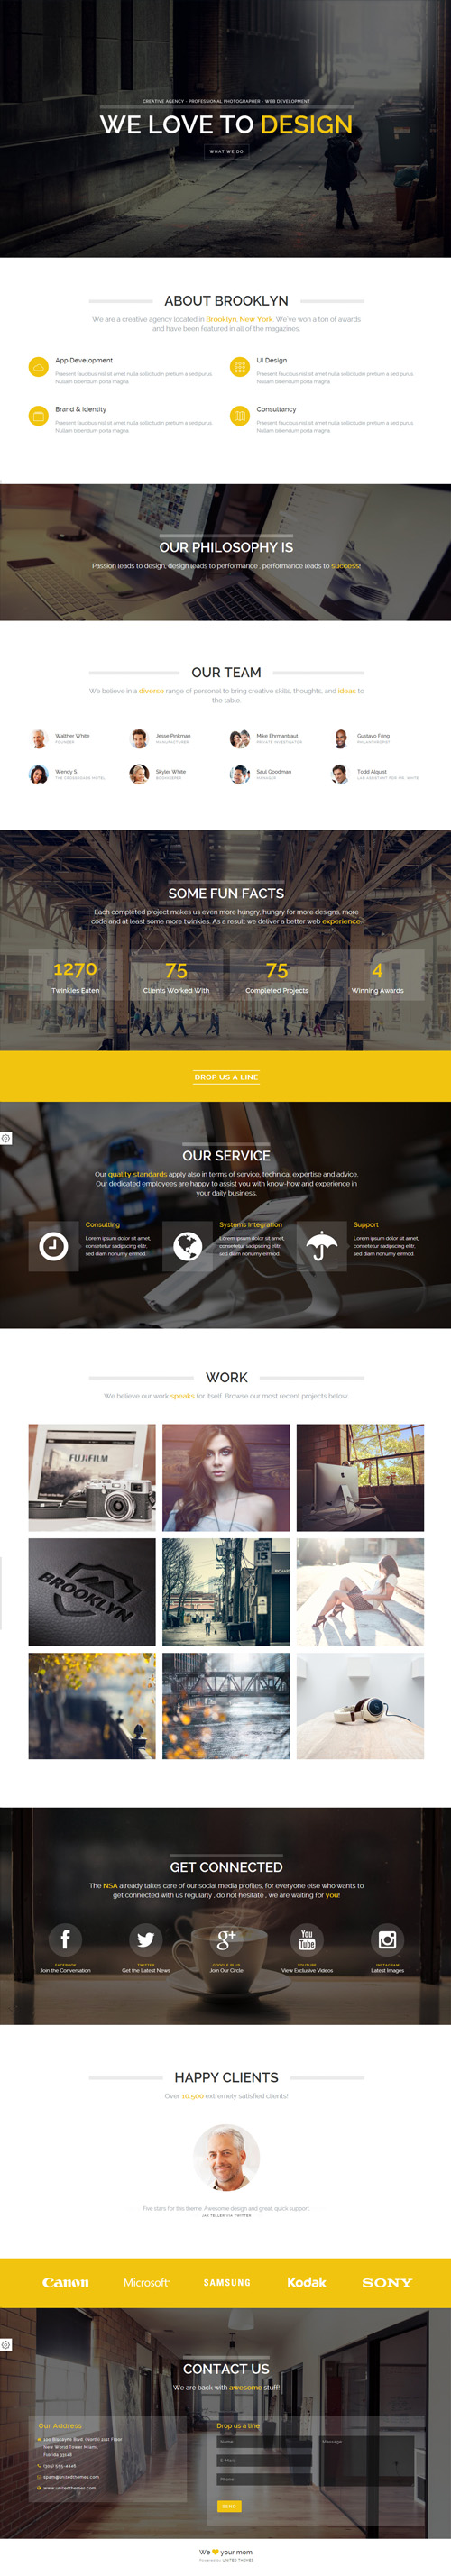 Brooklyn - Creative Portfolio Page HTML Template #html5templates ...